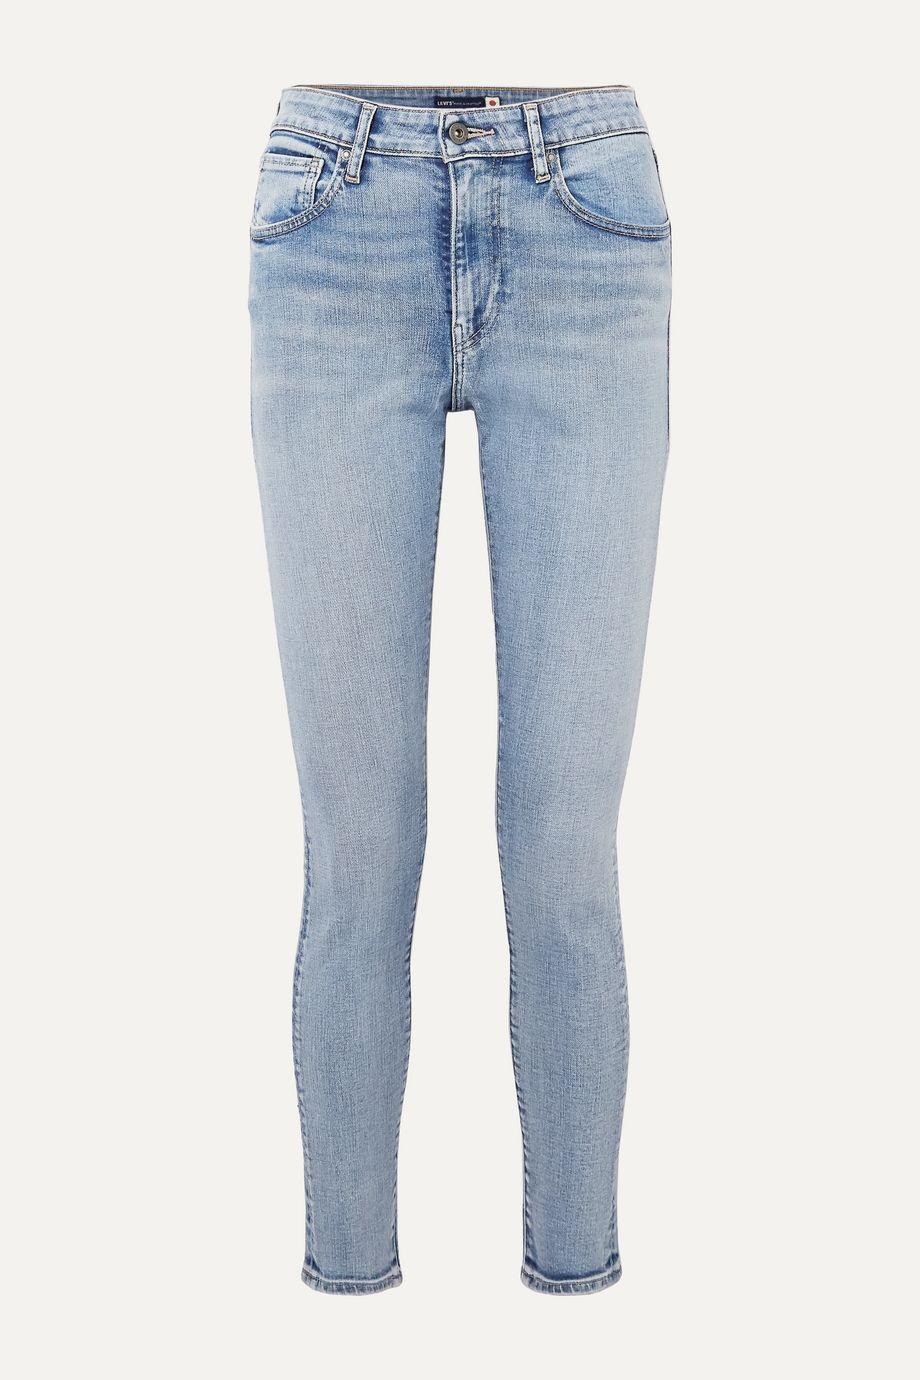 Levi's® Made & Crafted® 721 high-rise skinny jeans